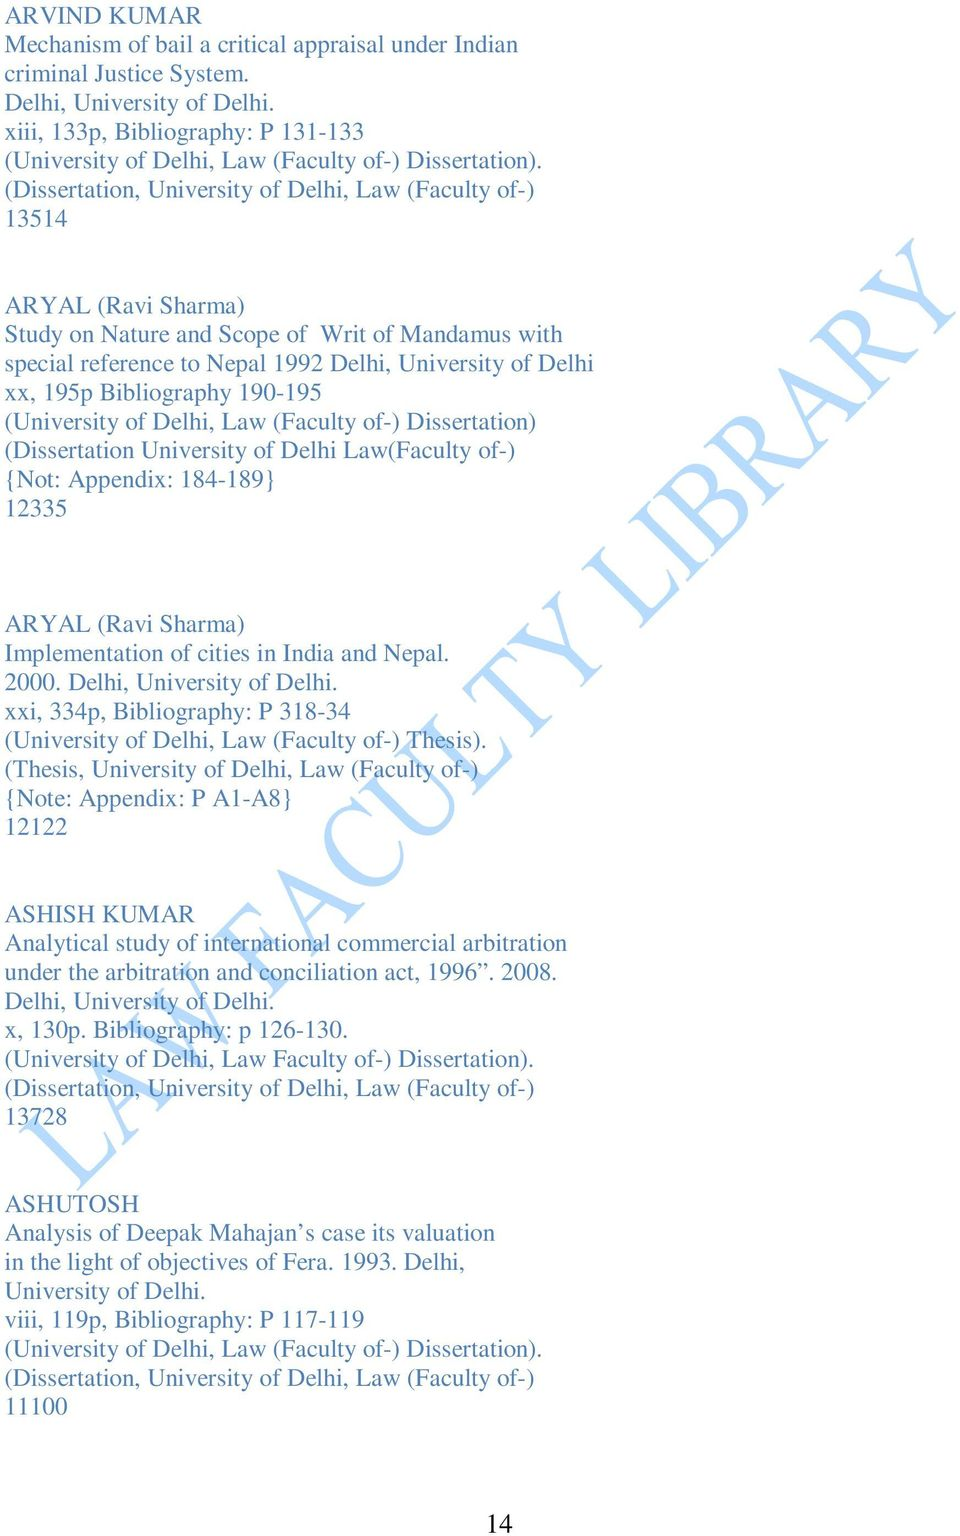 THESES AND DISSERTATIONS IN ALPHABETICAL ORDER - PDF